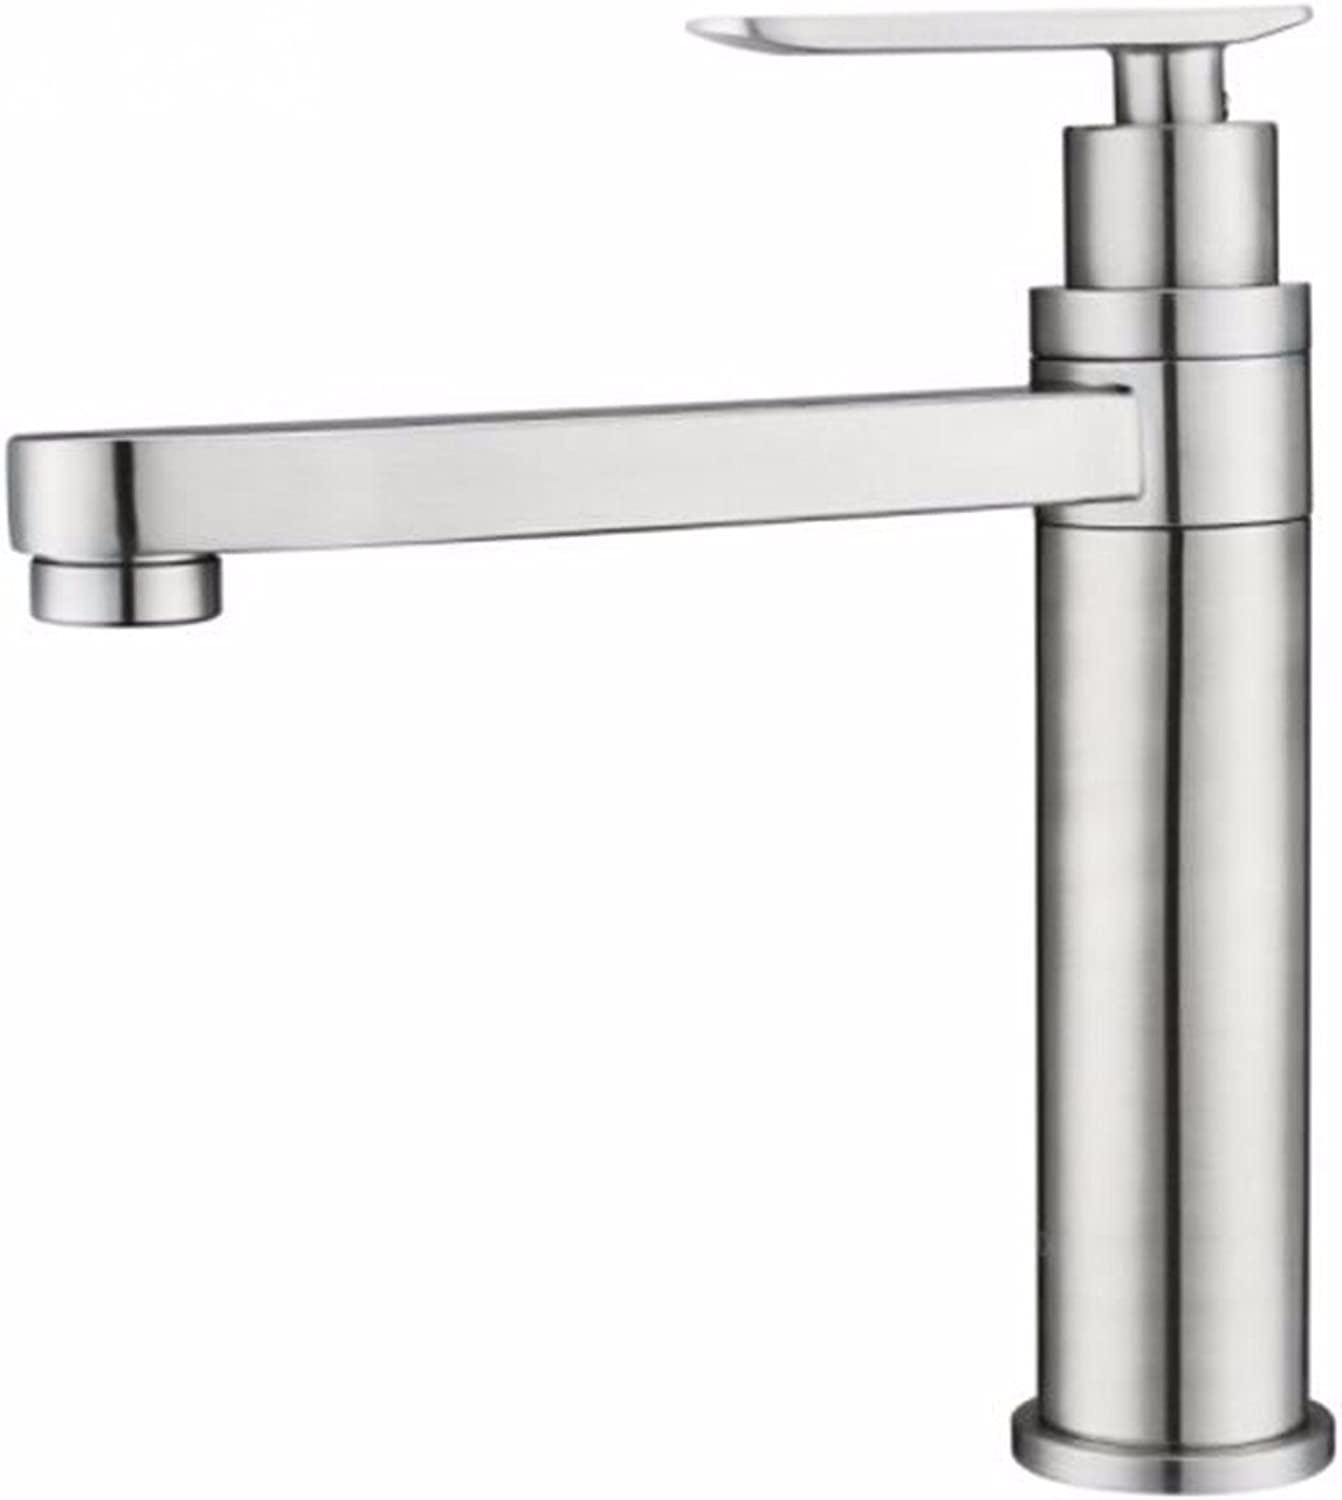 Hlluya Sink Mixer Tap Kitchen Faucet 304 stainless steel water faucet single cold water faucet bathroom vanity area with a sink faucet hand wash basin faucet single handle single hole Faucet